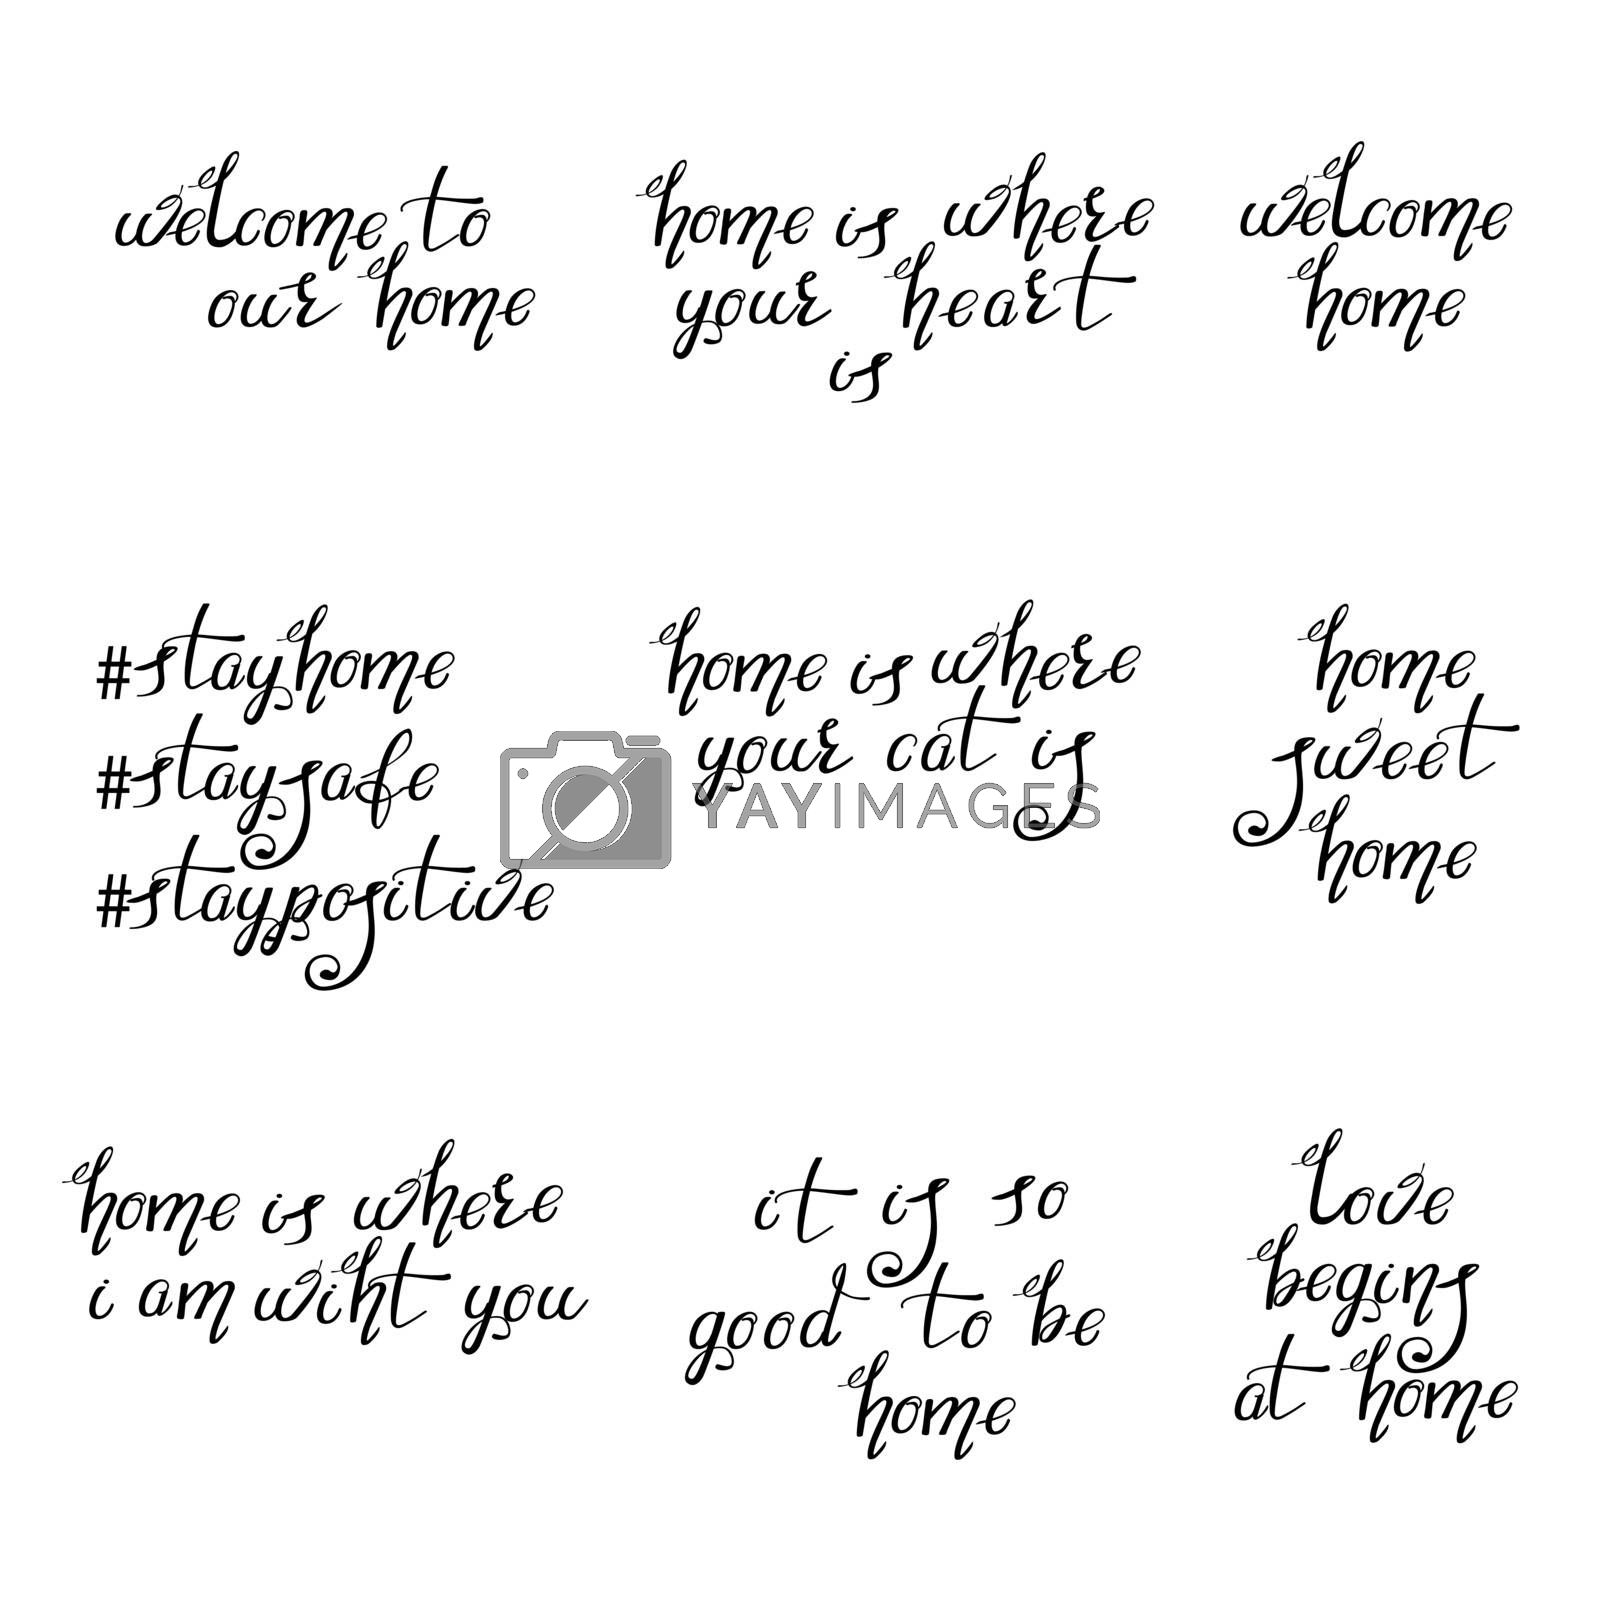 Lettering Typography Poster. Calligraphic Quotes for Posters, Home decorations, Cards. Motivational Hand Written Sign.